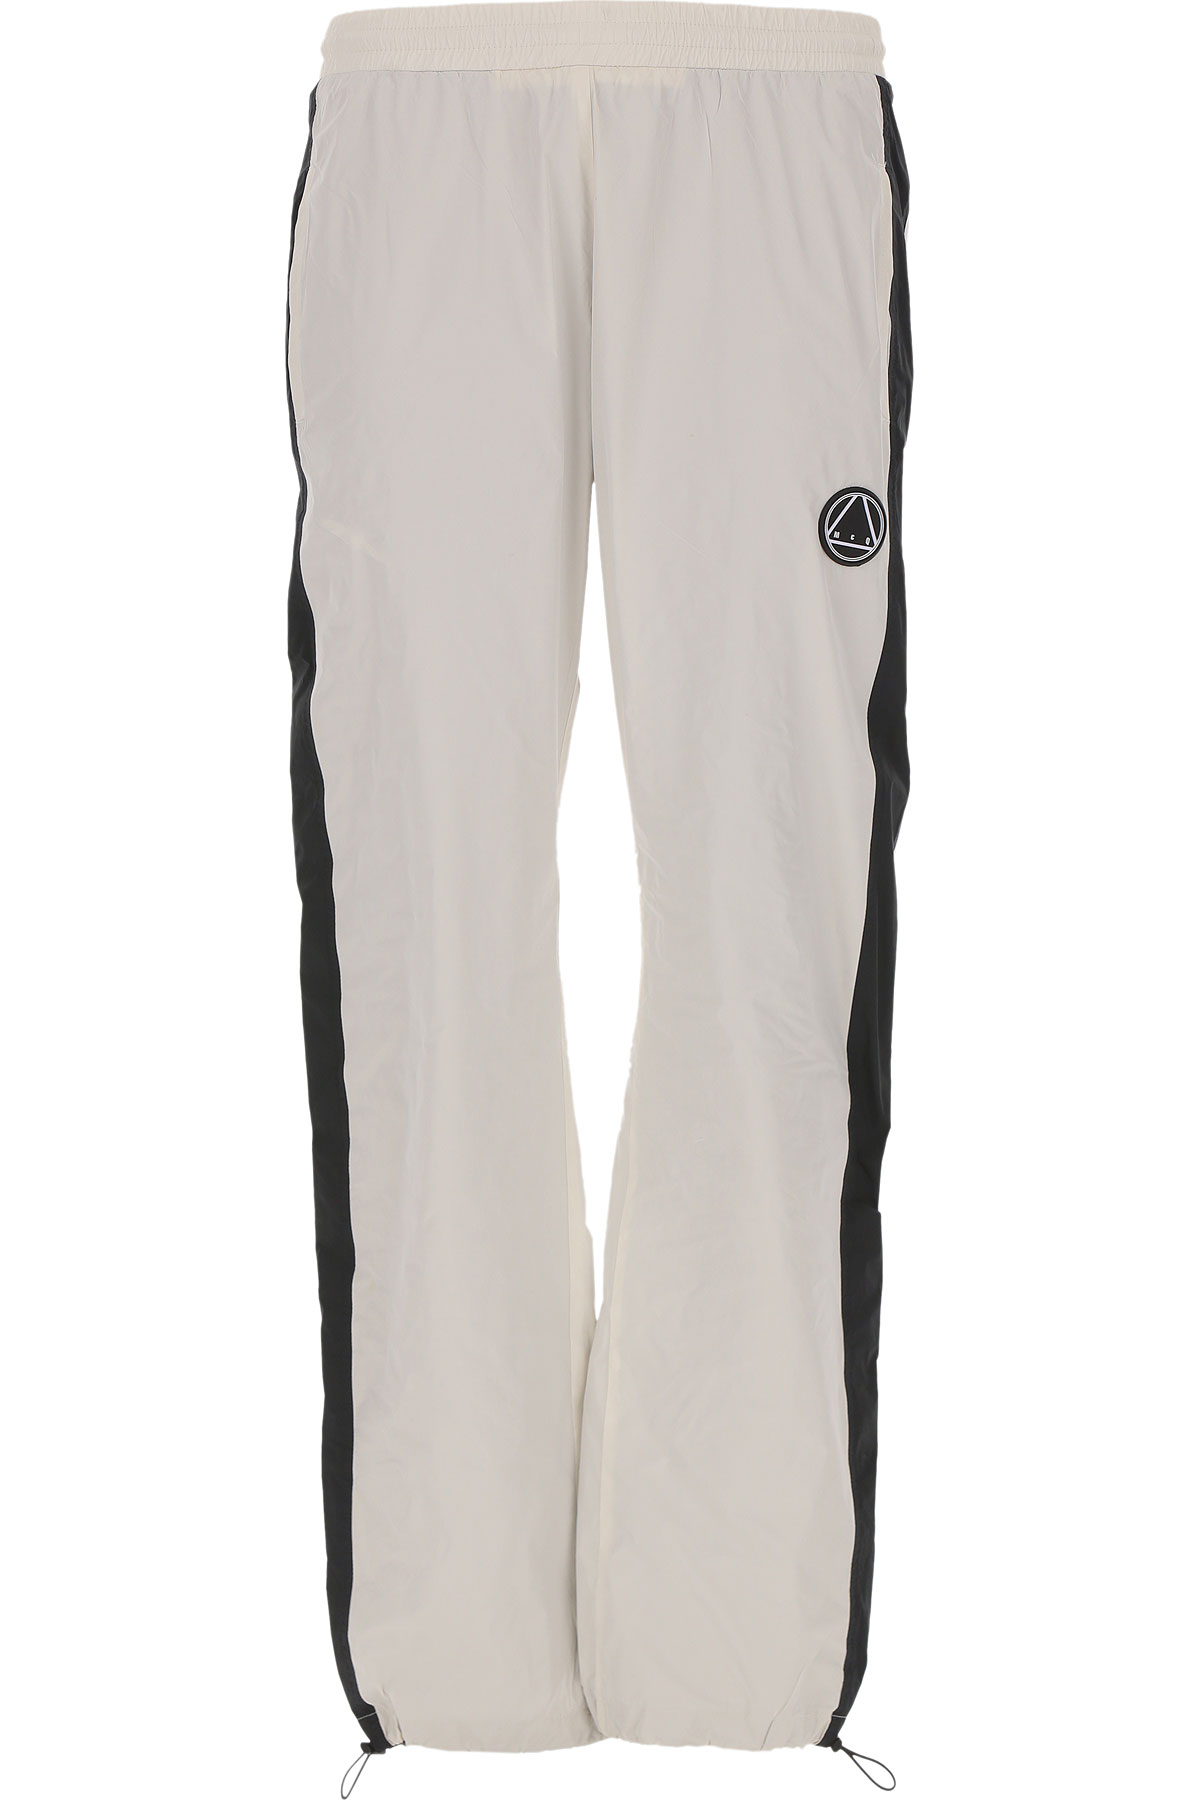 Alexander McQueen McQ Pants for Men On Sale, Chalk, polyester, 2019, 30 32 34